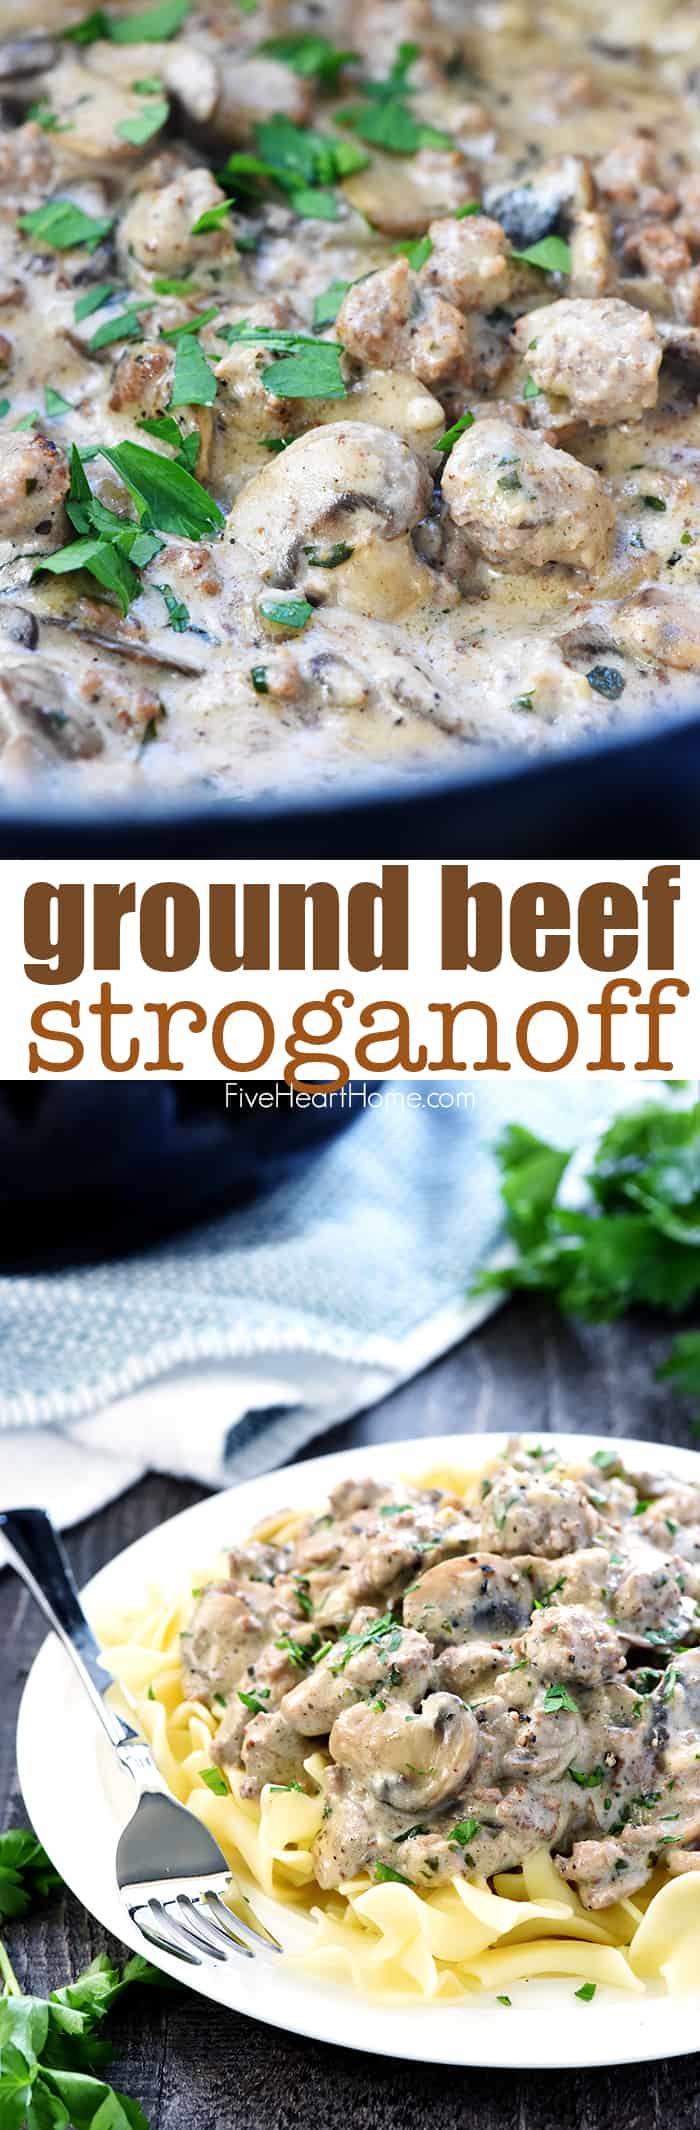 Ground Beef Stroganoff ~ a delicious, quick and easy version of the classic, loaded with garlicky mushrooms and finished off with a silky sour cream sauce! | FiveHeartHome.com via @fivehearthome